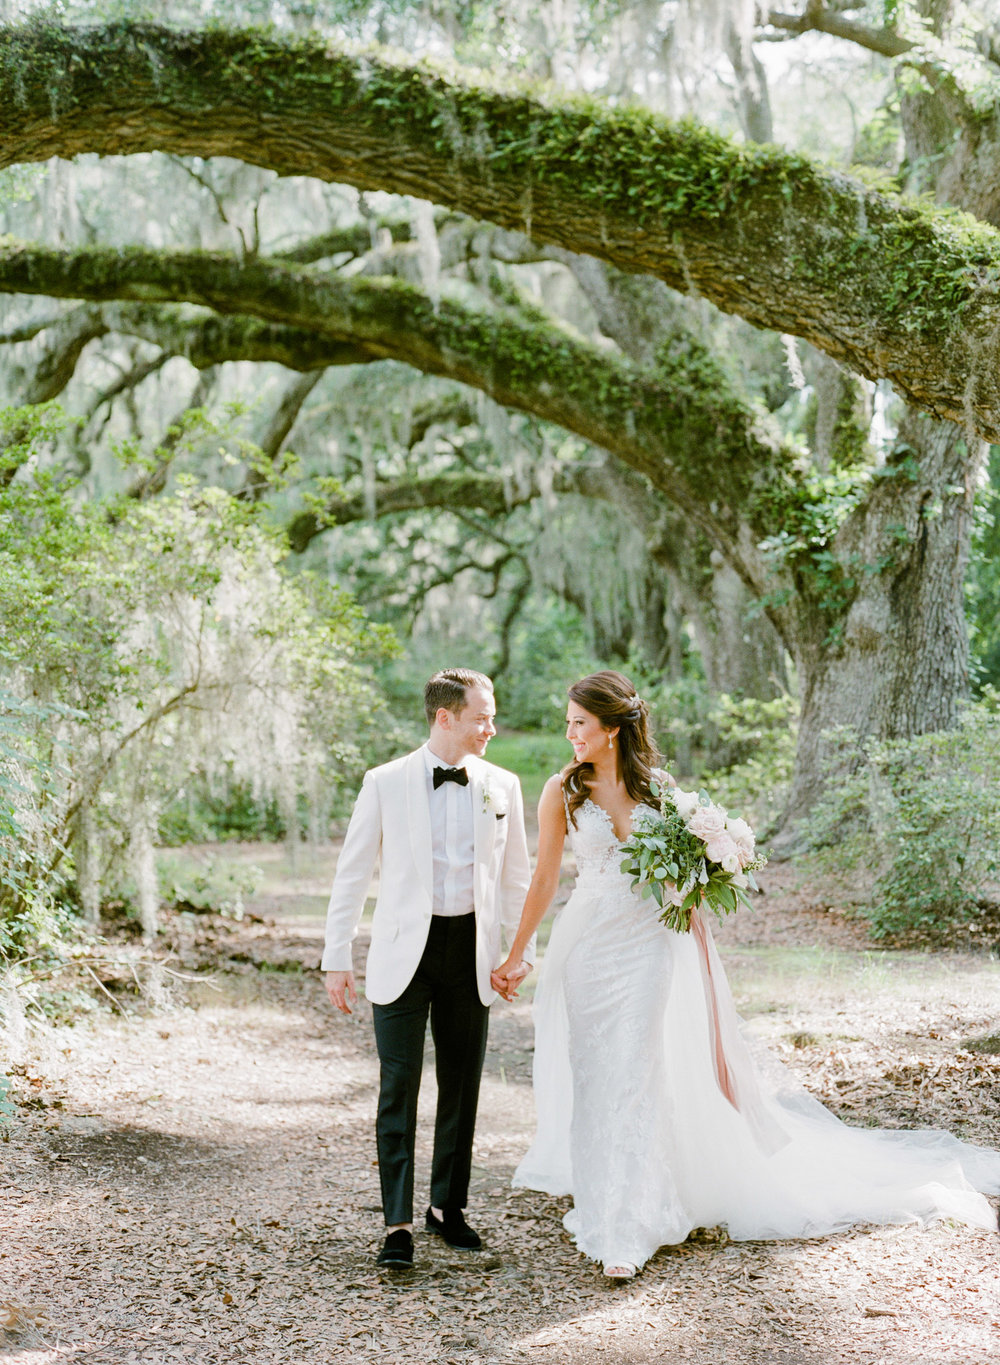 Charleston-Wedding-Venue-Magnolia-Plantation-1.jpg